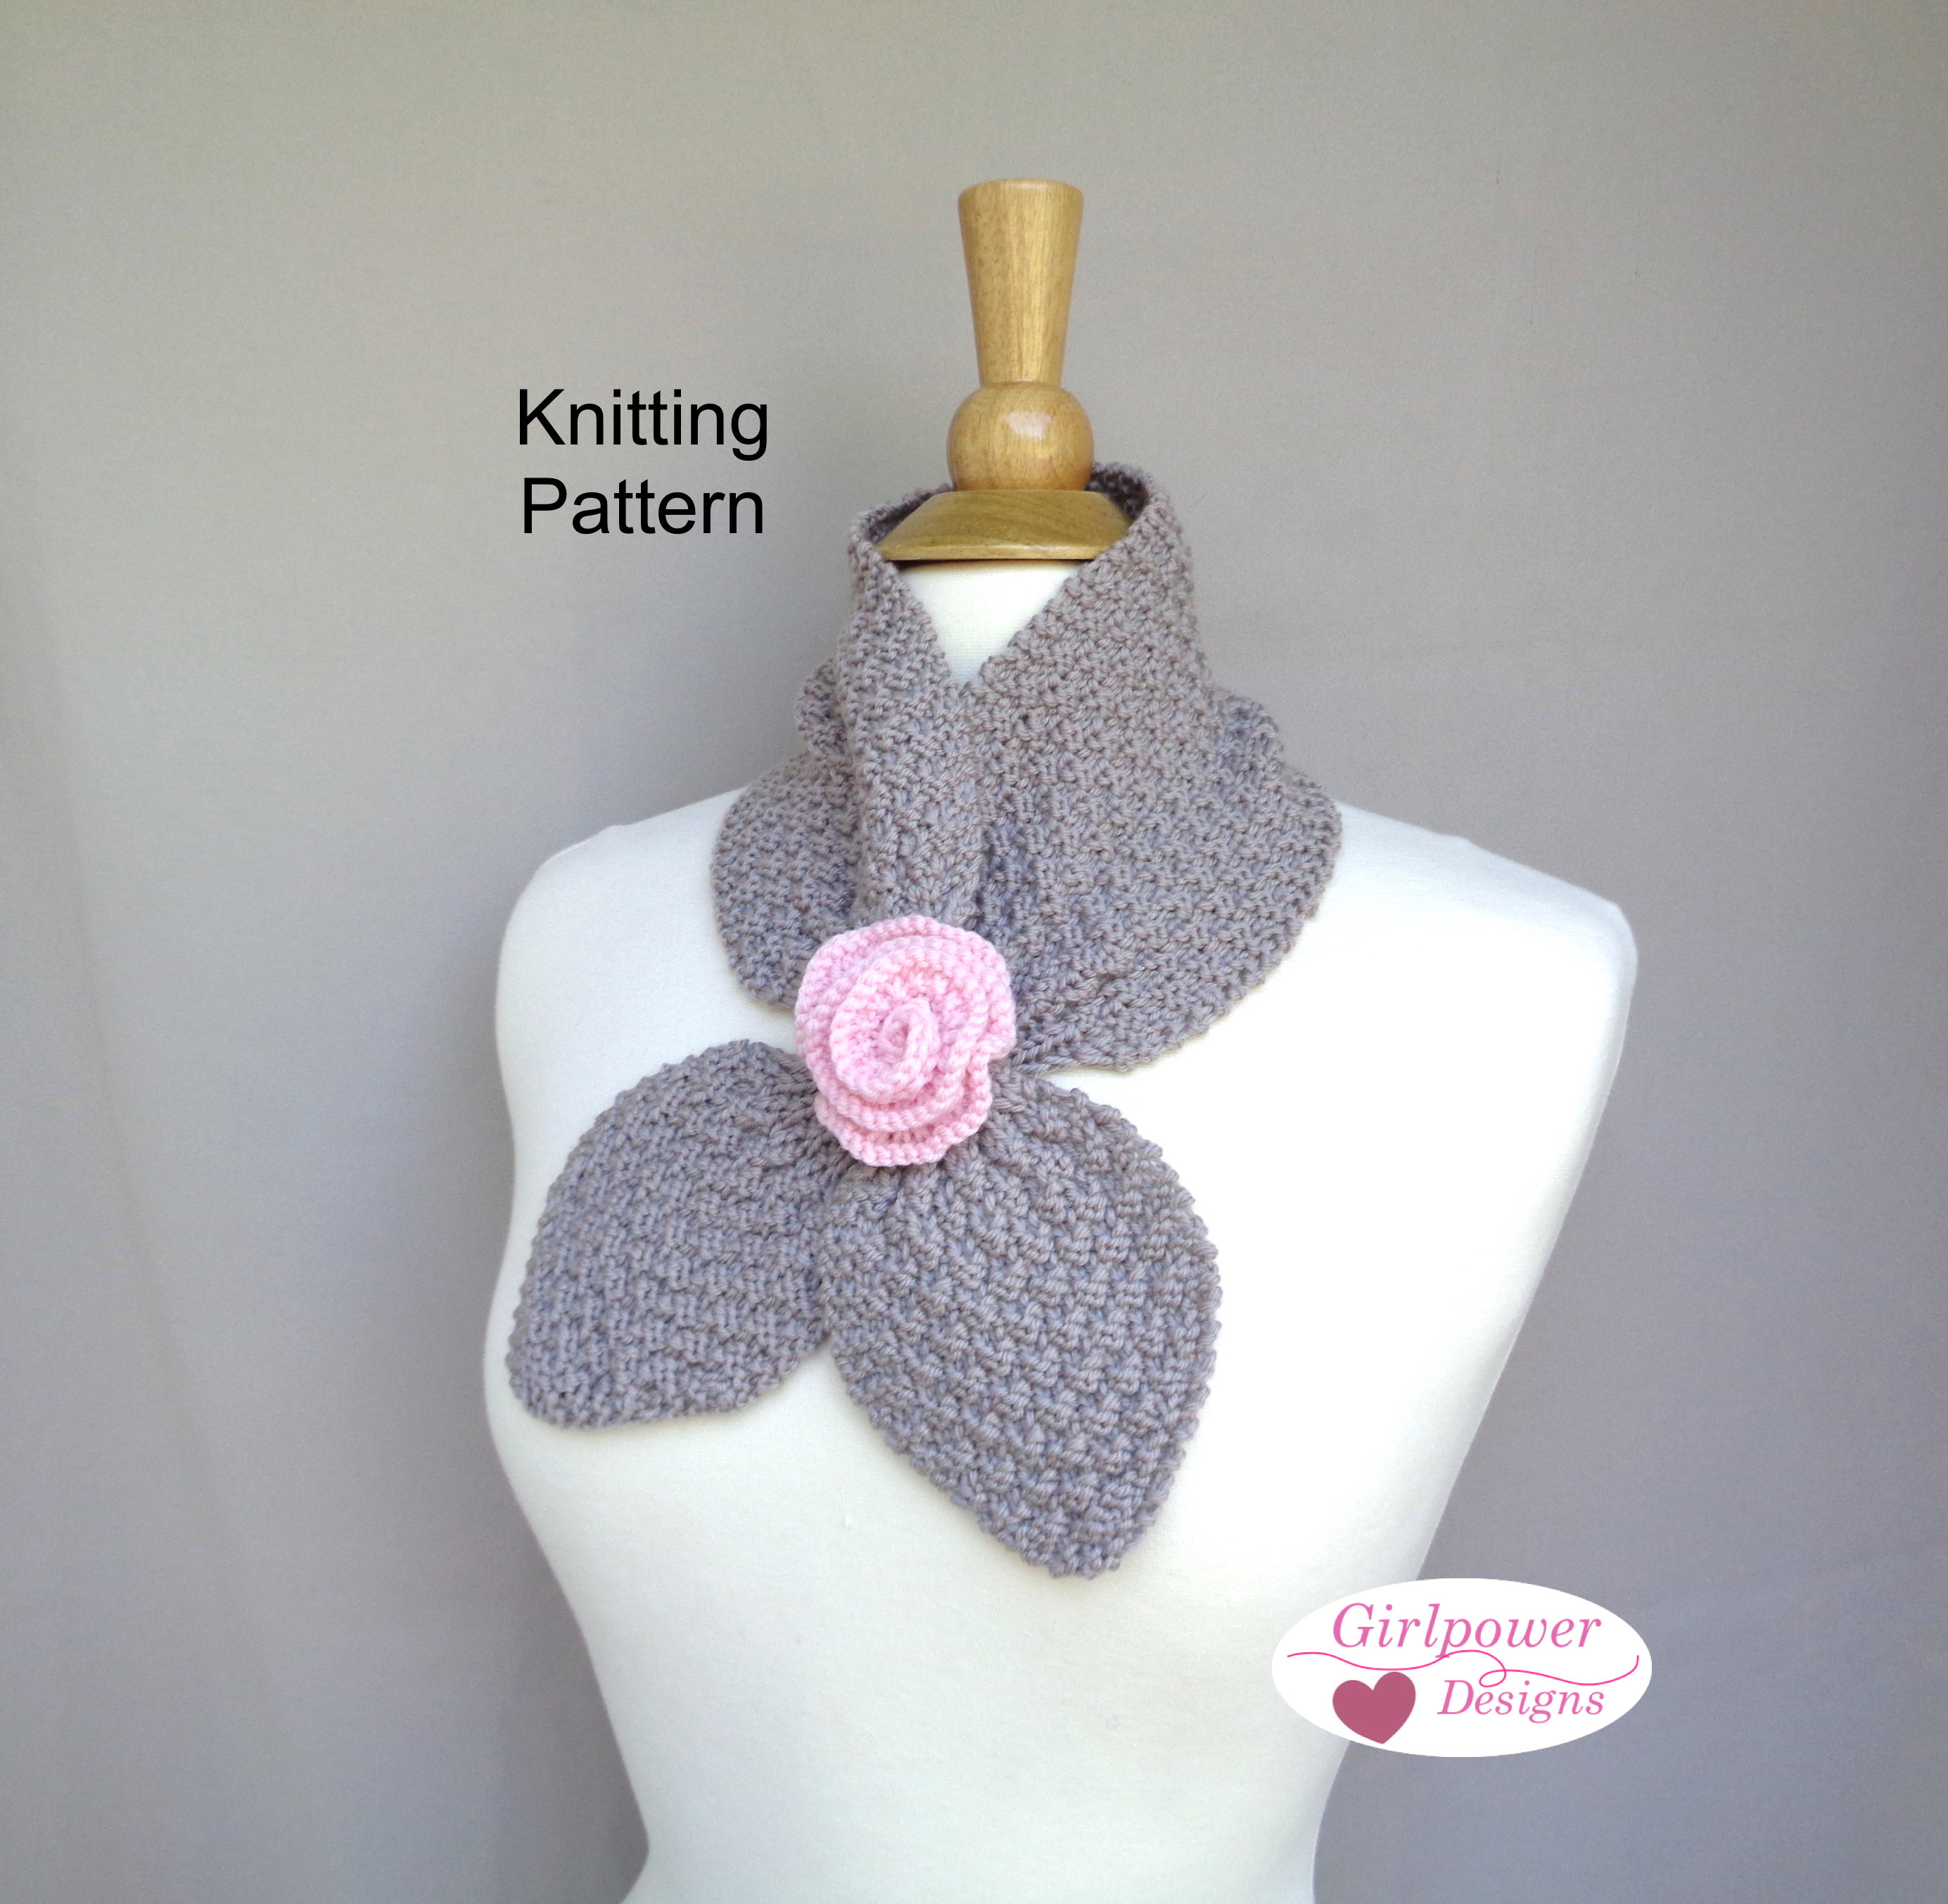 Ascot Scarf Knitting Pattern Rose Ascot Scarf Knitting Pattern Neck Warmer With Flower Accent Worsted Yarn Girls Women Bow Scarf